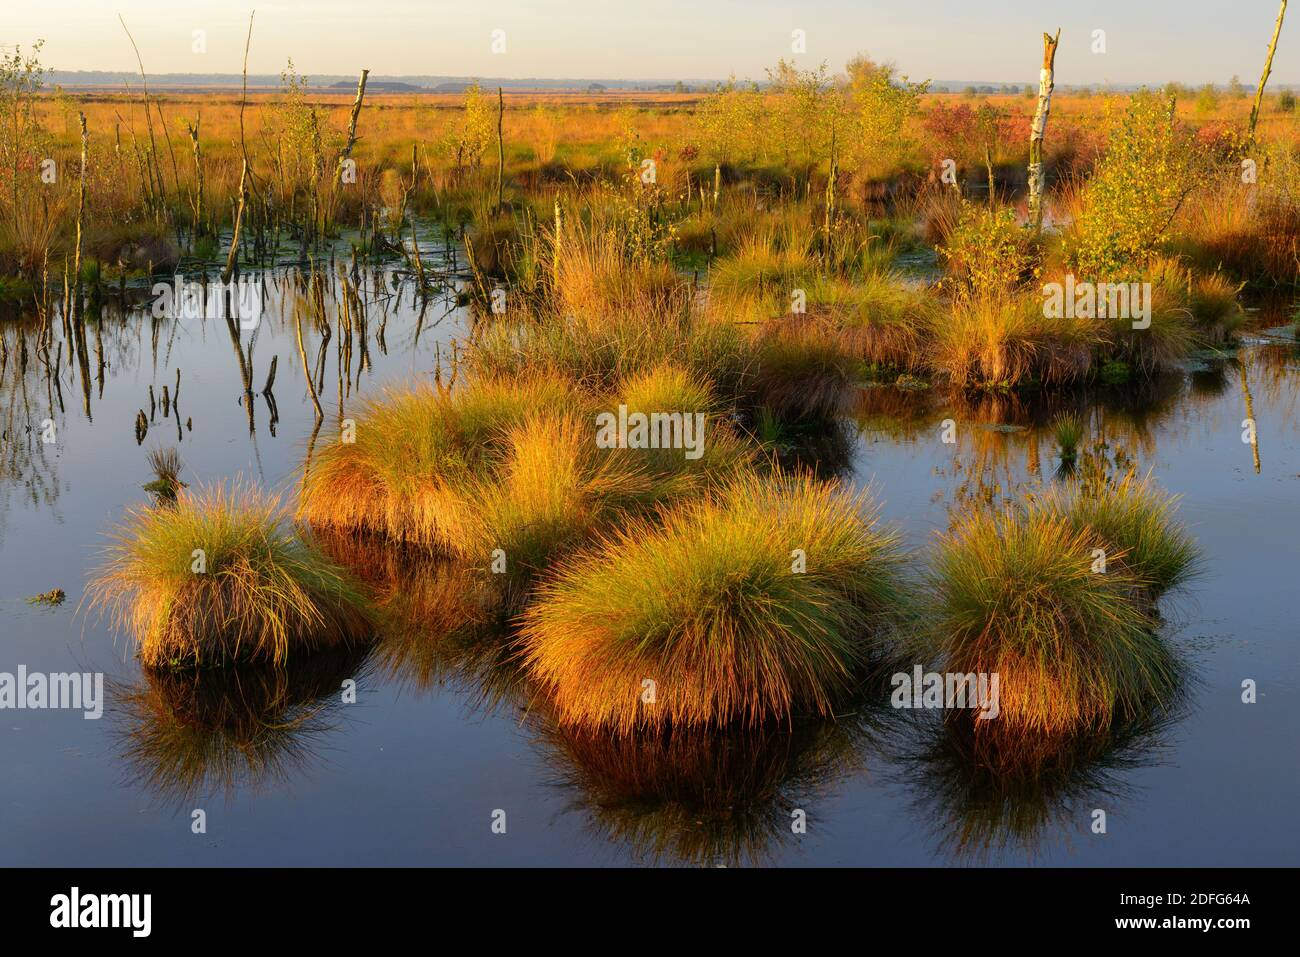 Goldenstedter Moor, Vechta, Stock Photo